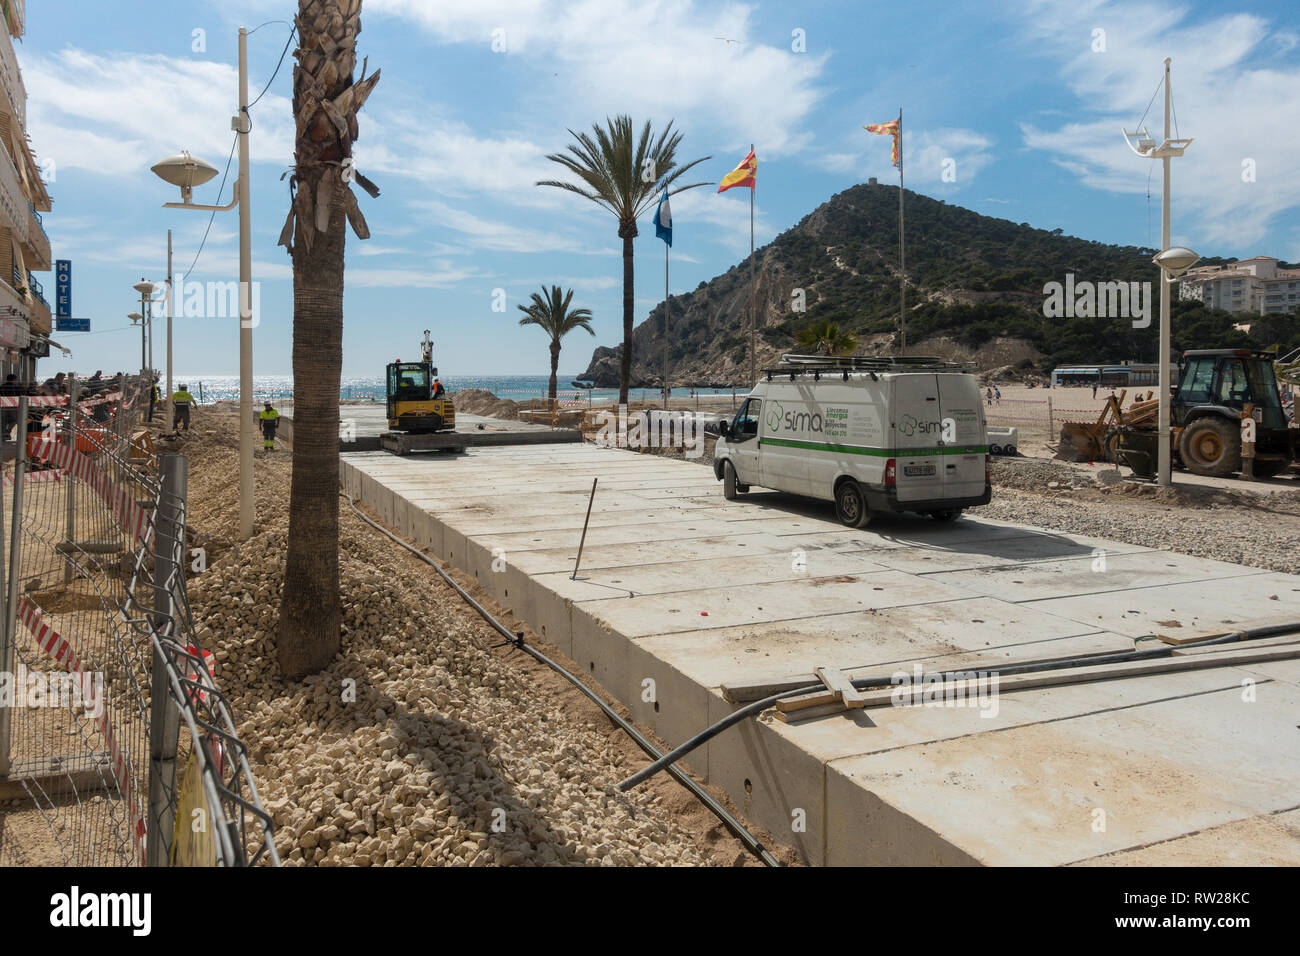 Marina Baixa Avenida, La Cala de Finestrat, Benidorm, Spain, 04 March 2019. Construction of a large double culvert below ground to take flood waters from the route of the old riverbed is nearly complete. The ravine had previously been paved over and the resulting floodwater ran down the road above ground resulting in 3 deaths in recent years. In 2017 a man was filmed being swept to his death here. Credit: Mick Flynn/Alamy Live News Stock Photo